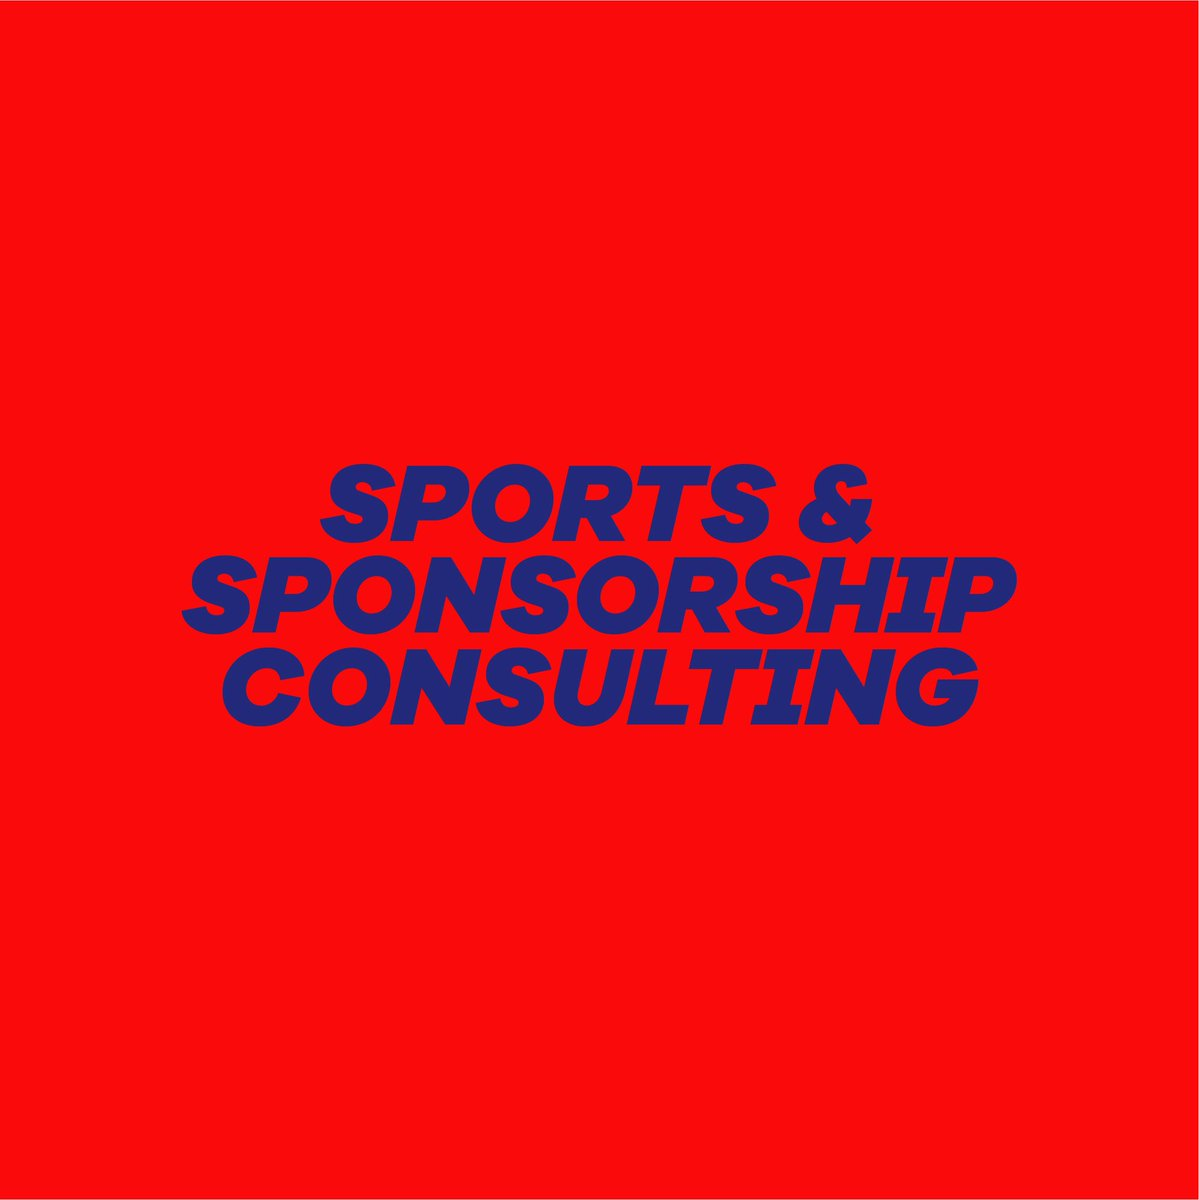 Rise Worldwide's Sports Sponsorship & Consultancy division represents brands like Dream11, boAt, BKT Tires, etc. in India & globally.  India's most prestigious Tennis Tournament and South Asia's only @atptour event, @MaharashtraOpen is managed & promoted by RISE Worldwide.